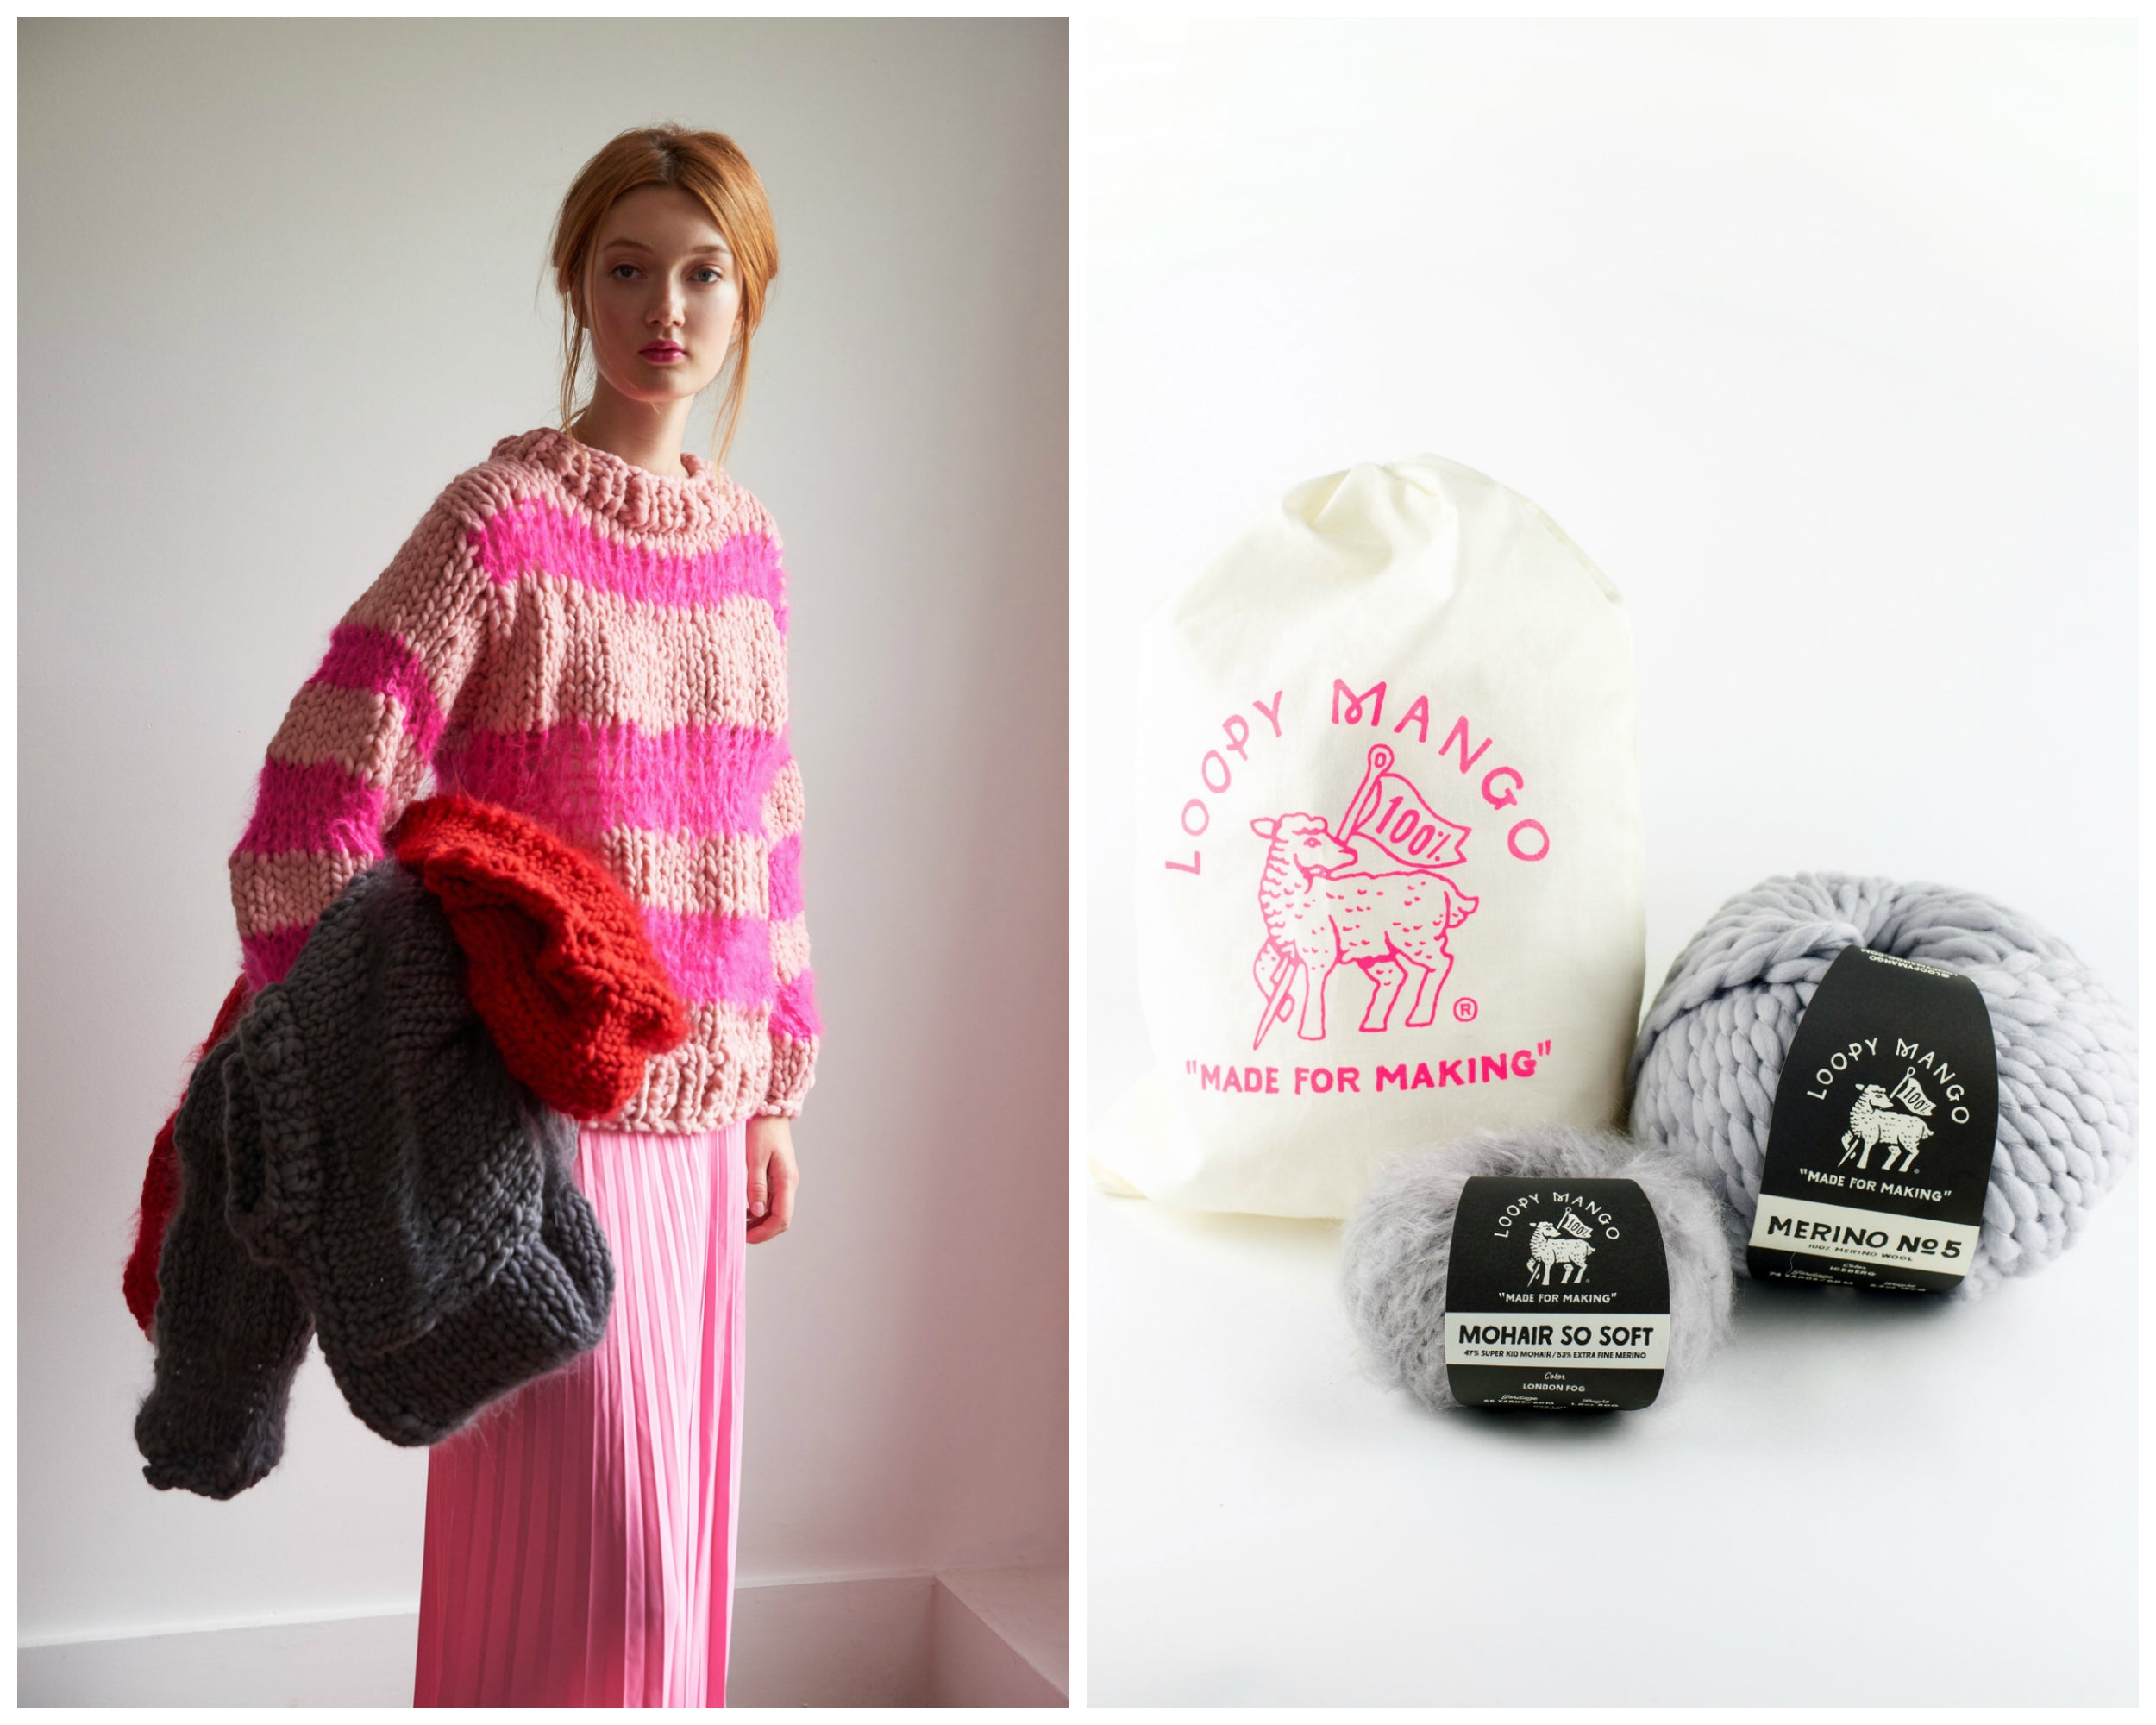 02a5befba DIY Kit - Meri-Mohair Sweater - Merino No. 5 and Mohair So Soft ...